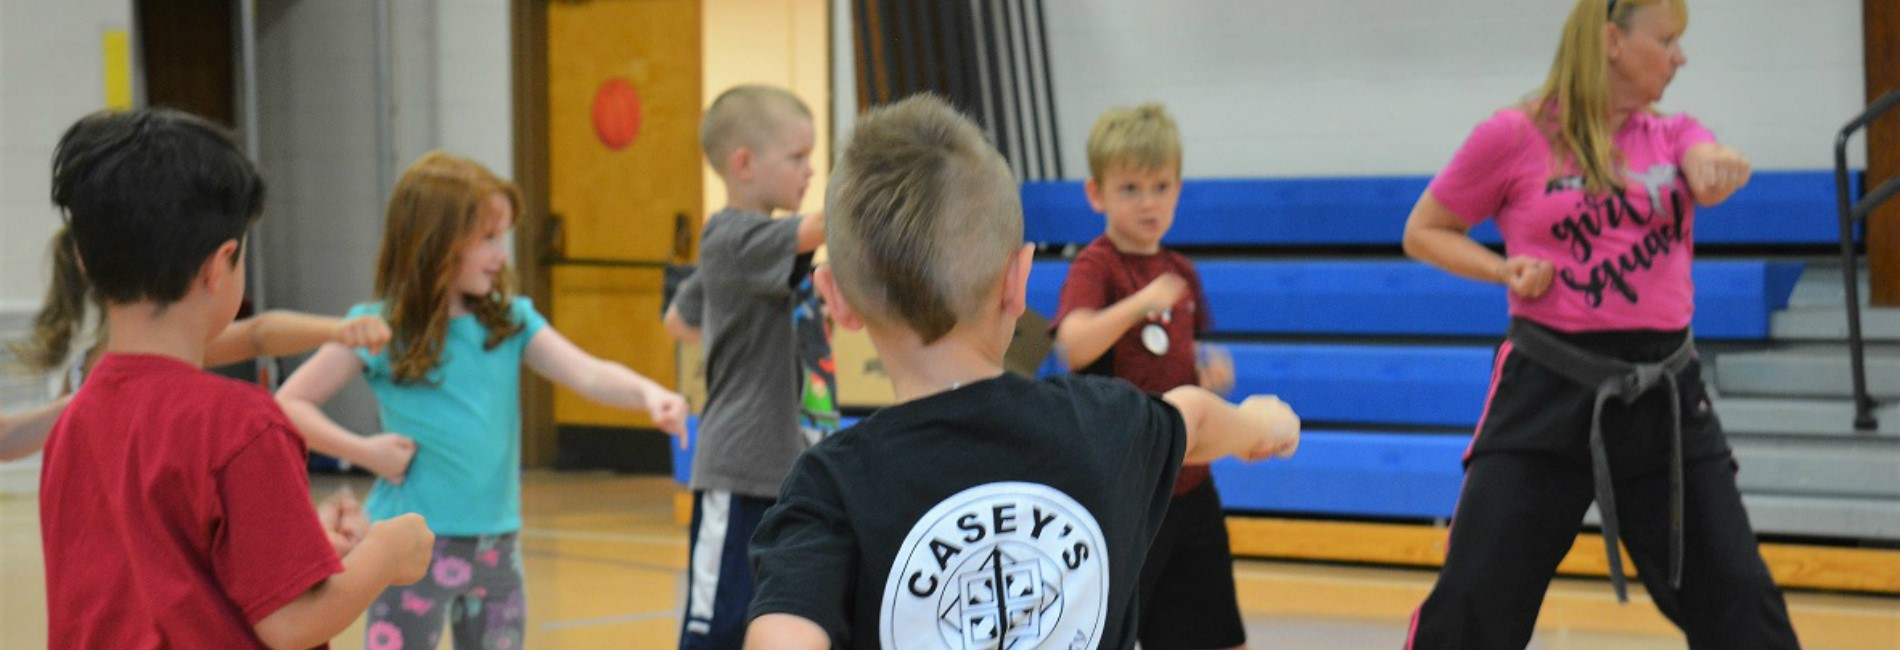 Summer Snowflakes 2018 Martial Arts In Action